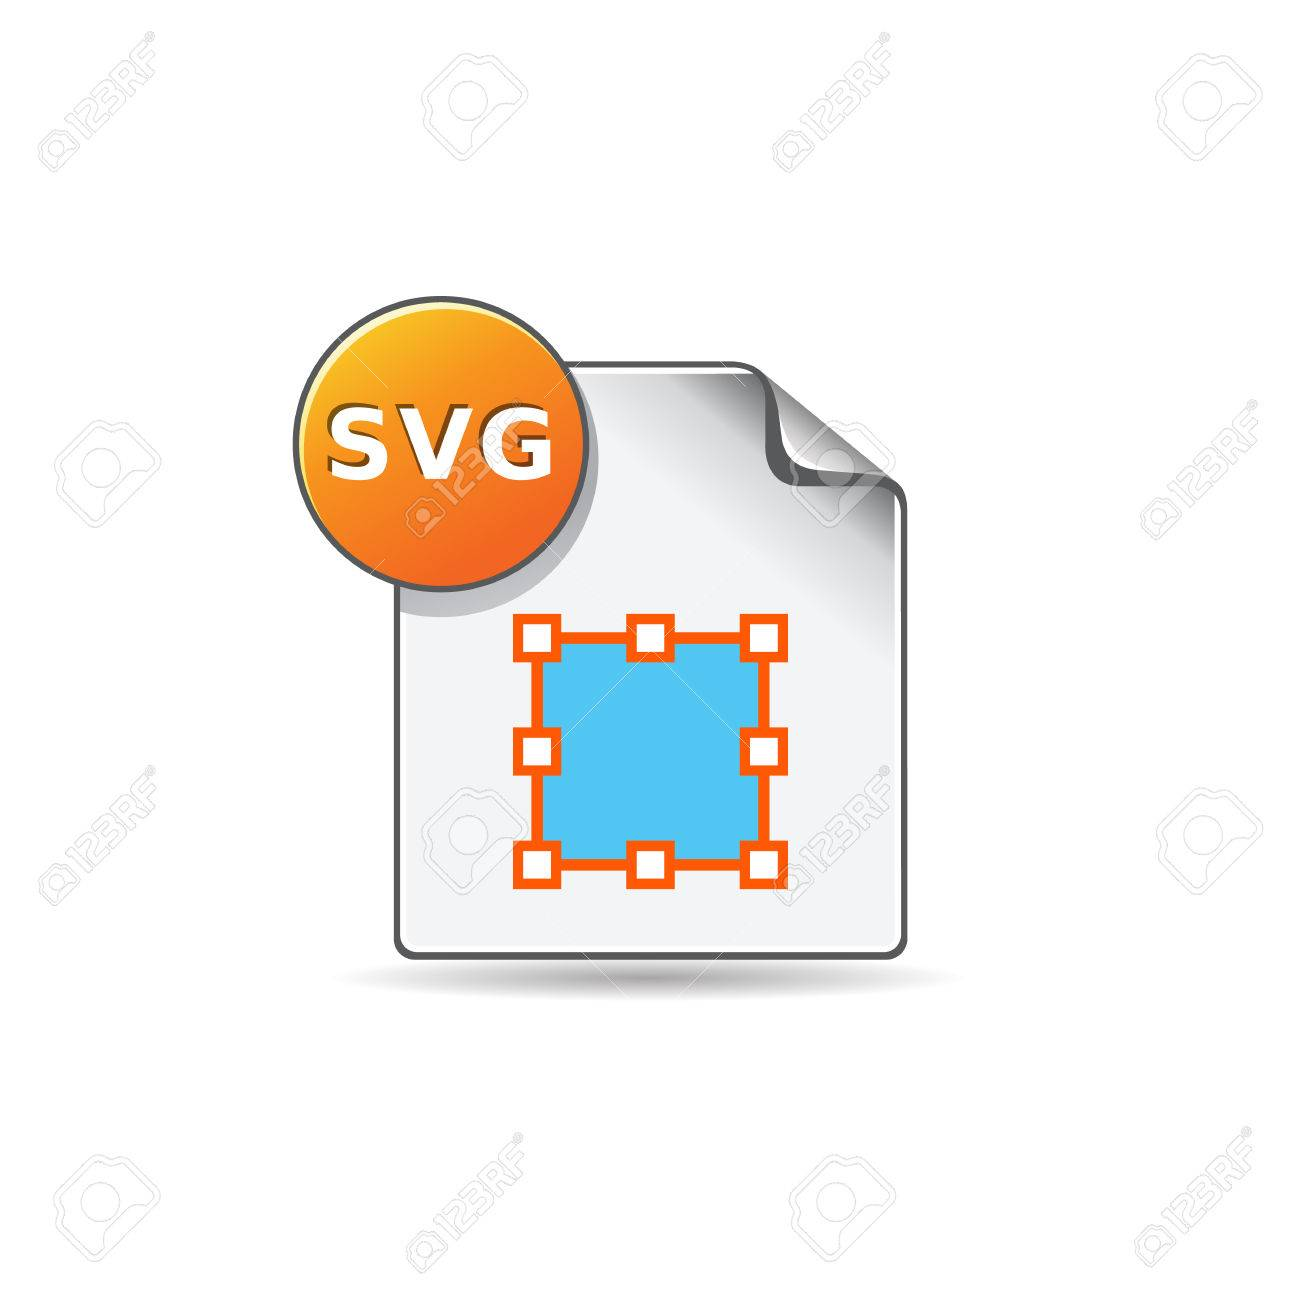 SVG file icon in color. Computer software drawing scalable Stock Vector - 71632717